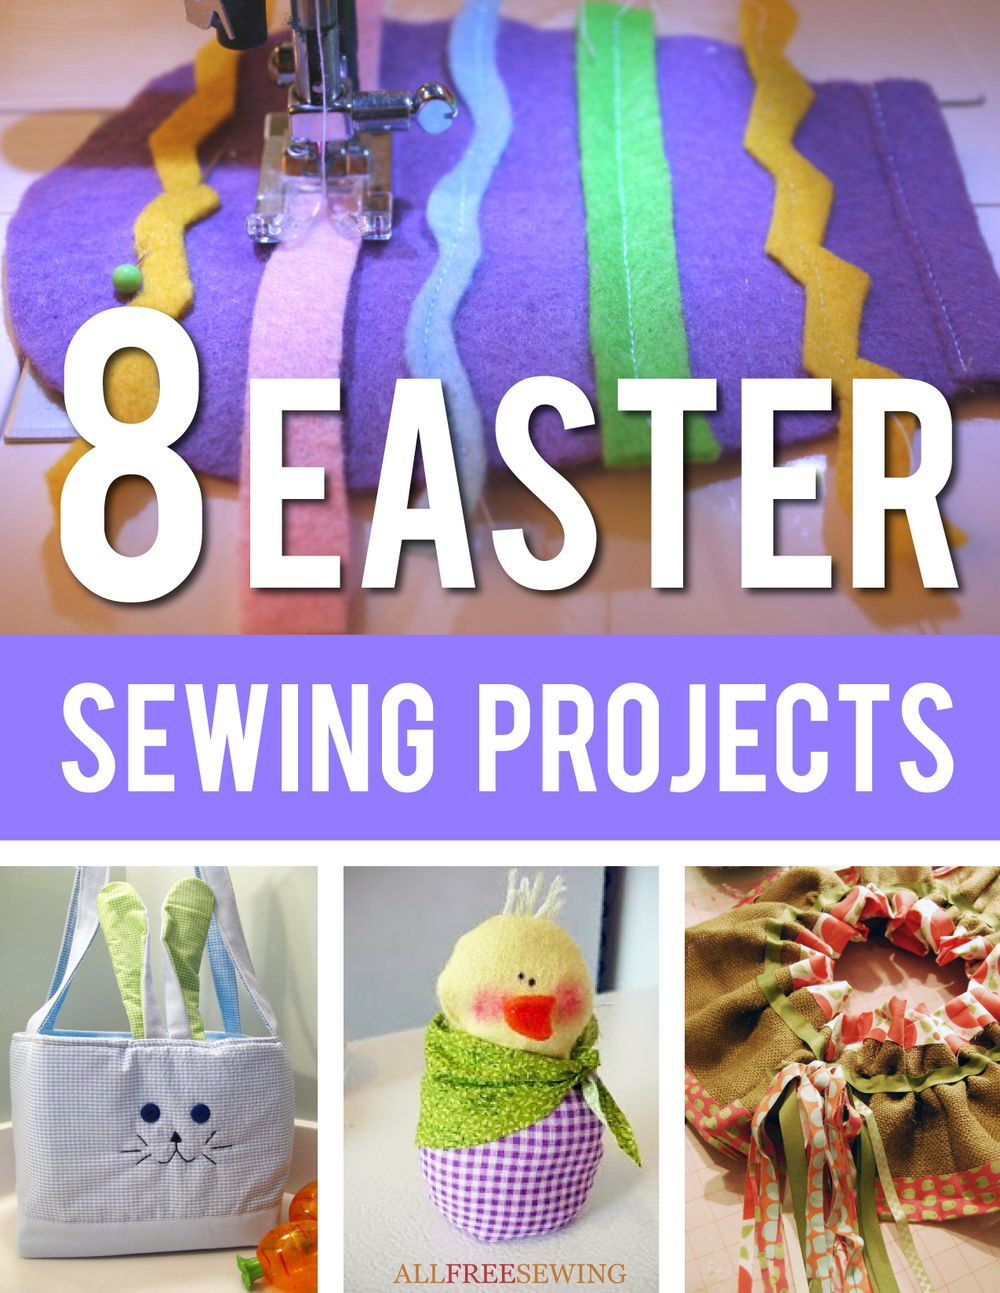 8 easter sewing projects ebook sewing projects easter and easter lots of great ideas for hand made easter decorations and gifts in this free 8 easter sewing projects ebook allfreesewing negle Gallery